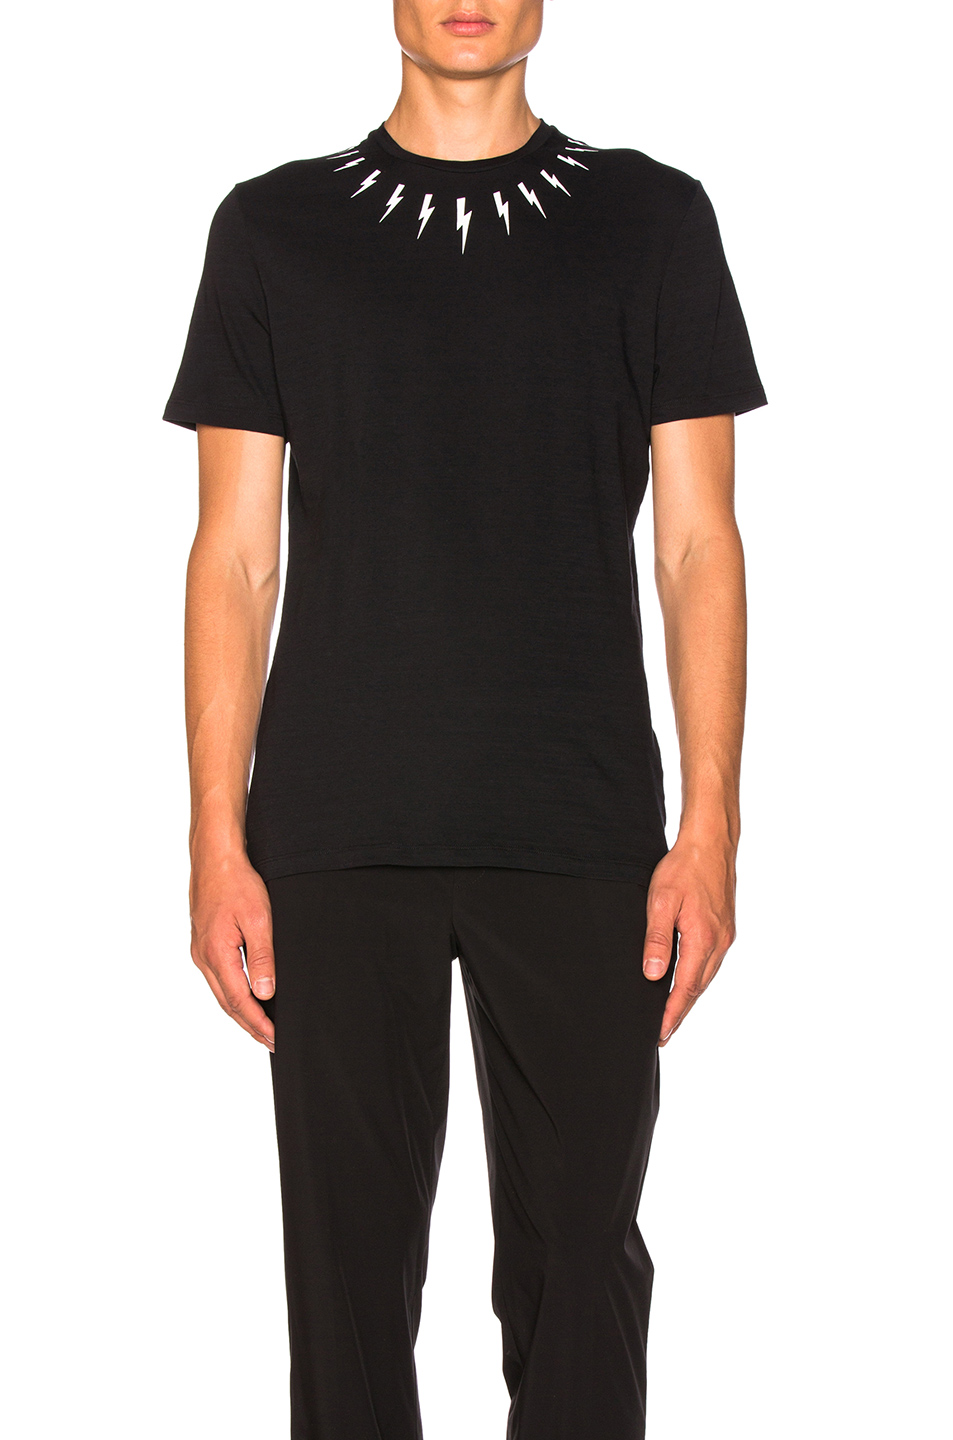 Neil Barrett Single Fair Isle Thunderbolt Tee in Black